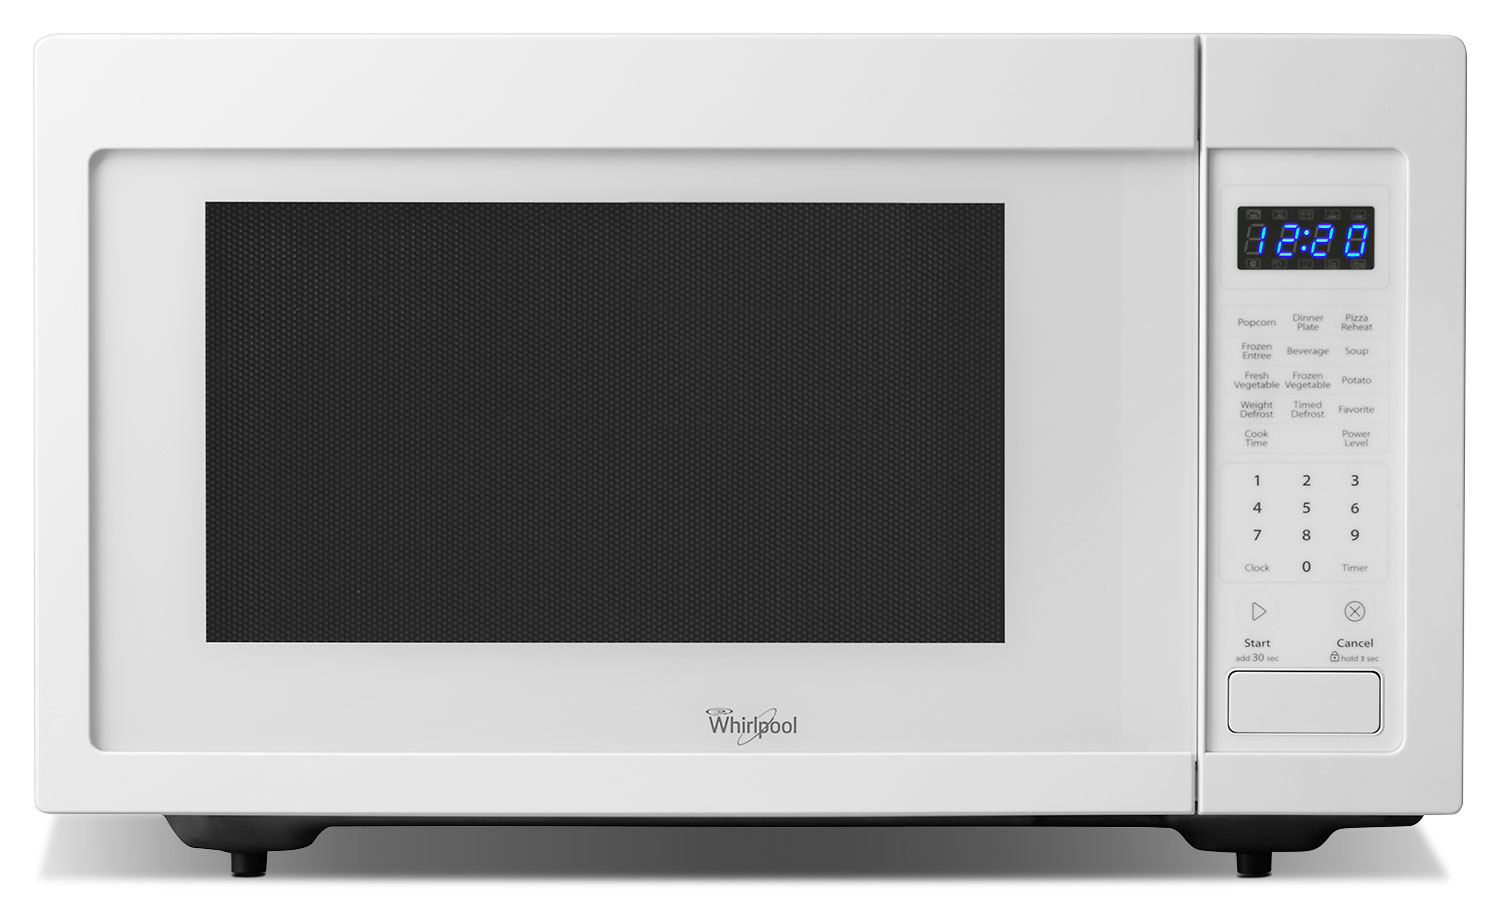 Countertop Microwave Placement : ... Products - Whirlpool 1.6 Cu. Ft. Countertop Microwave ? YWMC30516DW